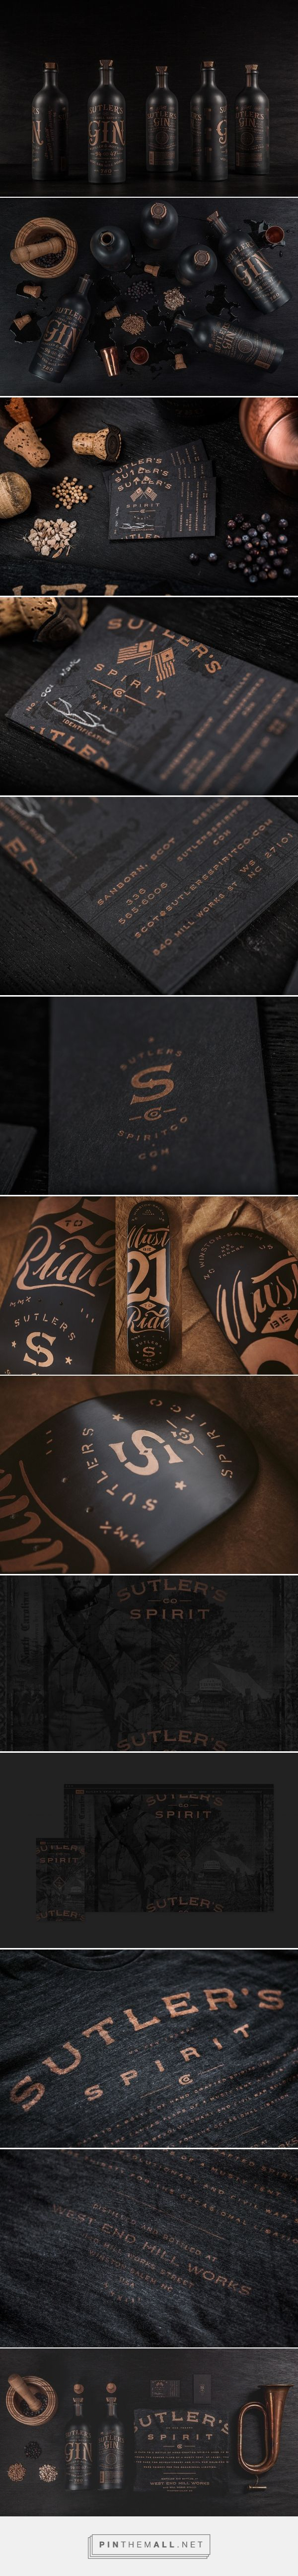 Sutler's Spirit Co. Branding and Packaging by Device Creative Collaborative | Fivestar Branding Agency – Design and Branding Agency & Curated Inspiration Gallery